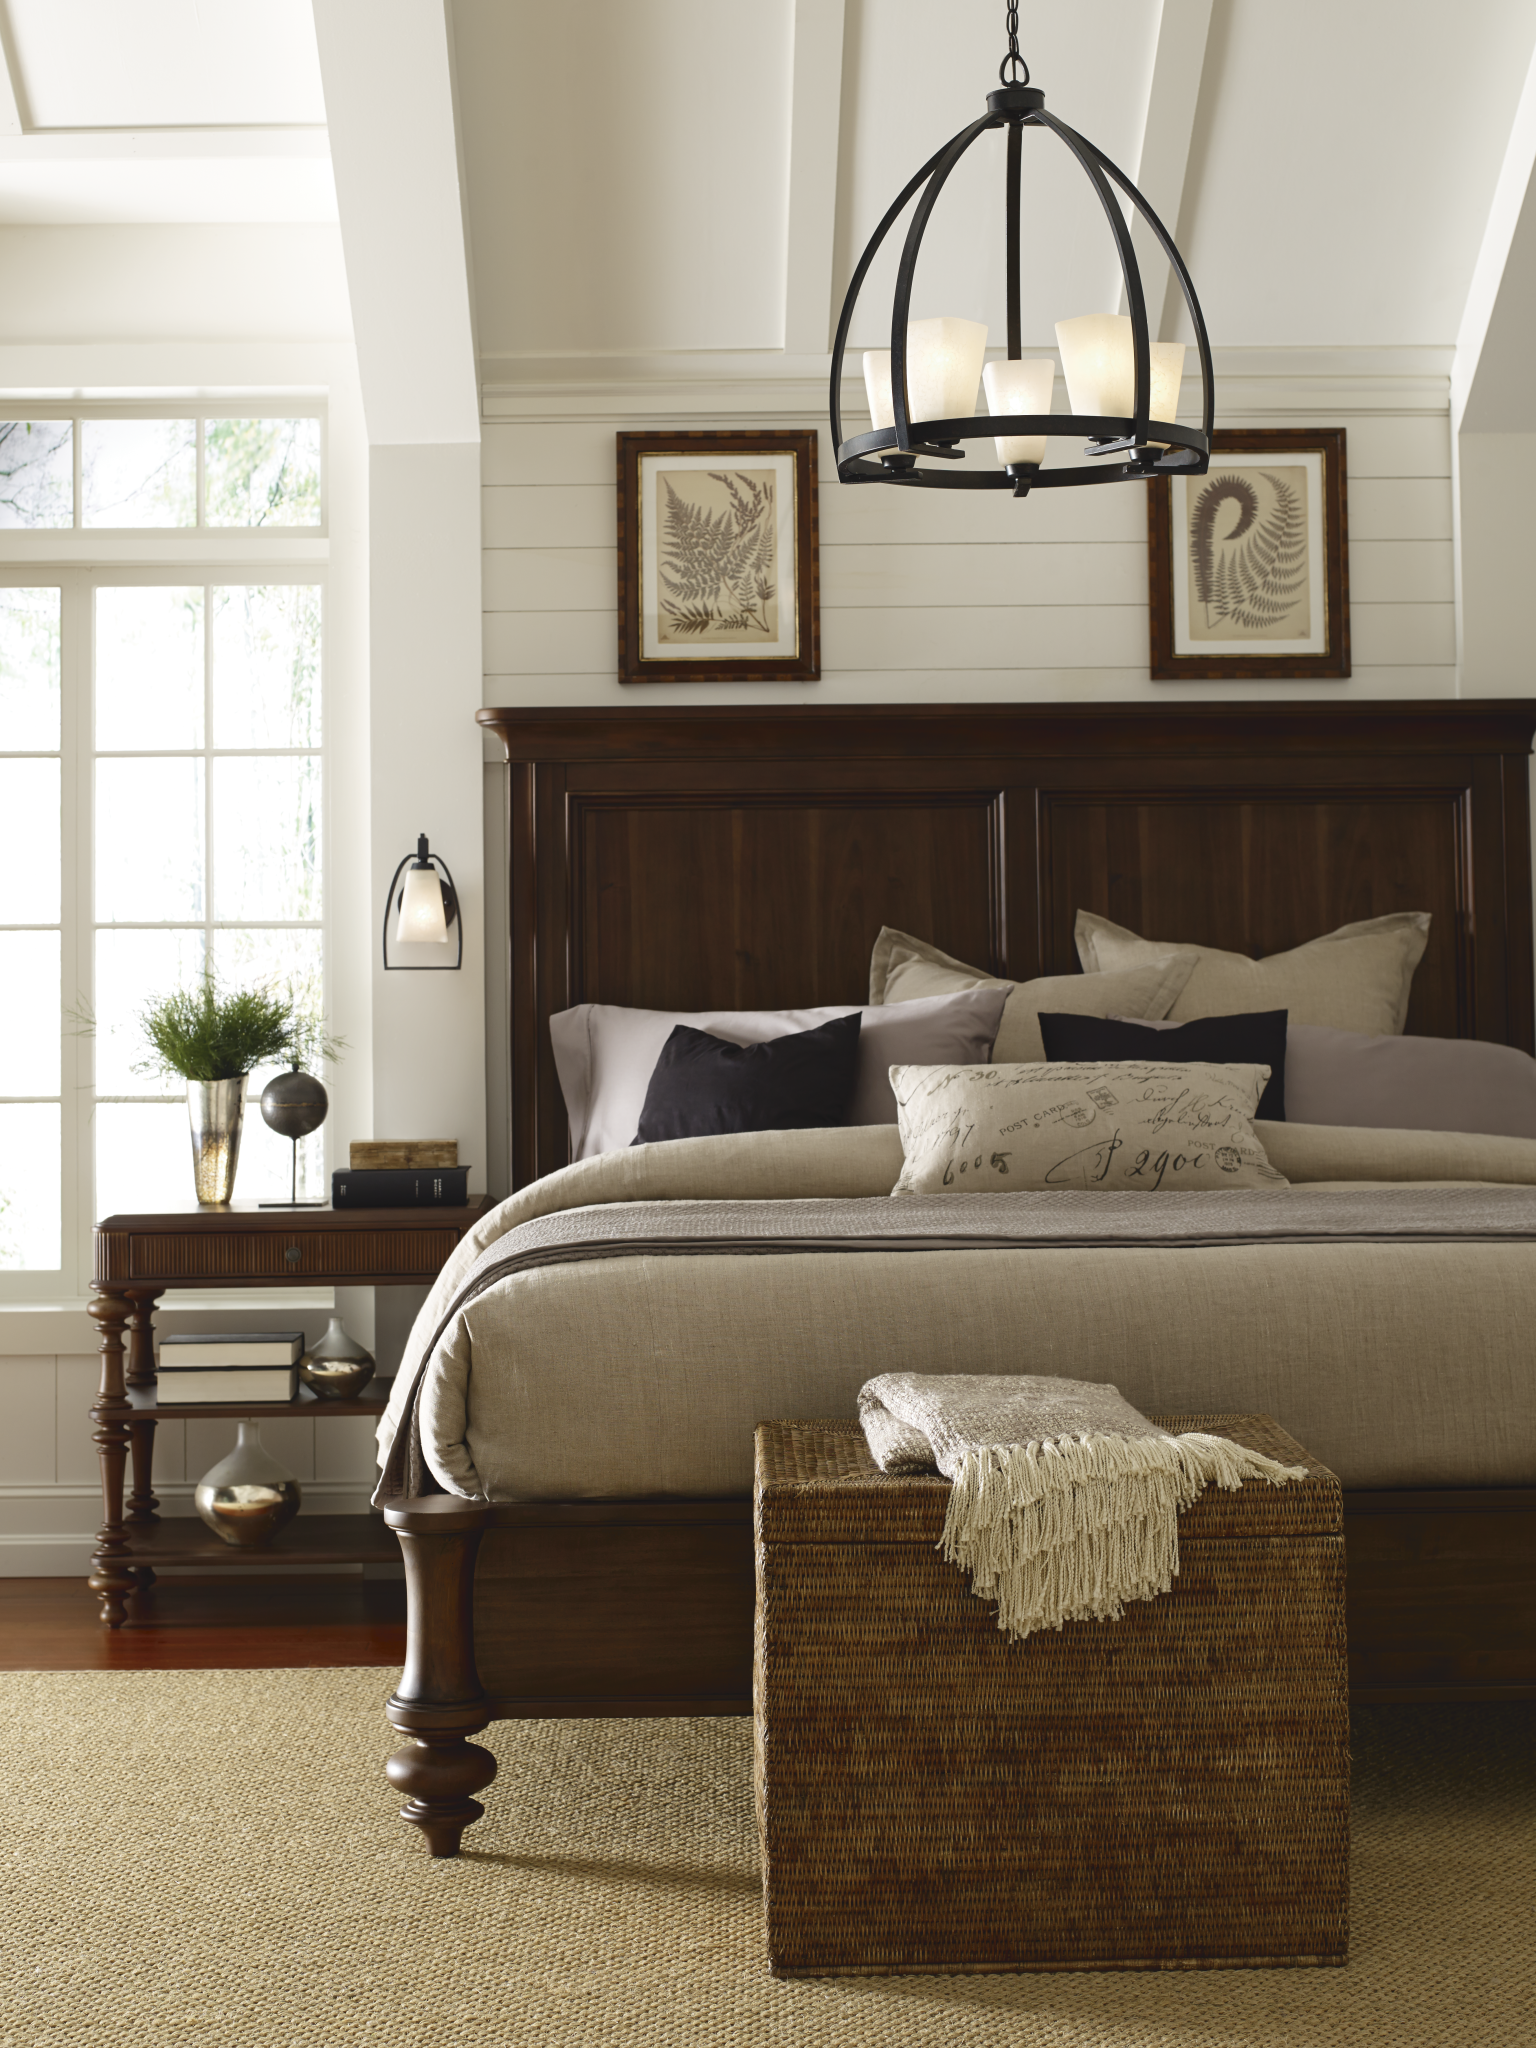 Delicieux Illuminate Your Rustic, Industrial Chic Bedroom With A Statement Chandelier  Above The Bed. #